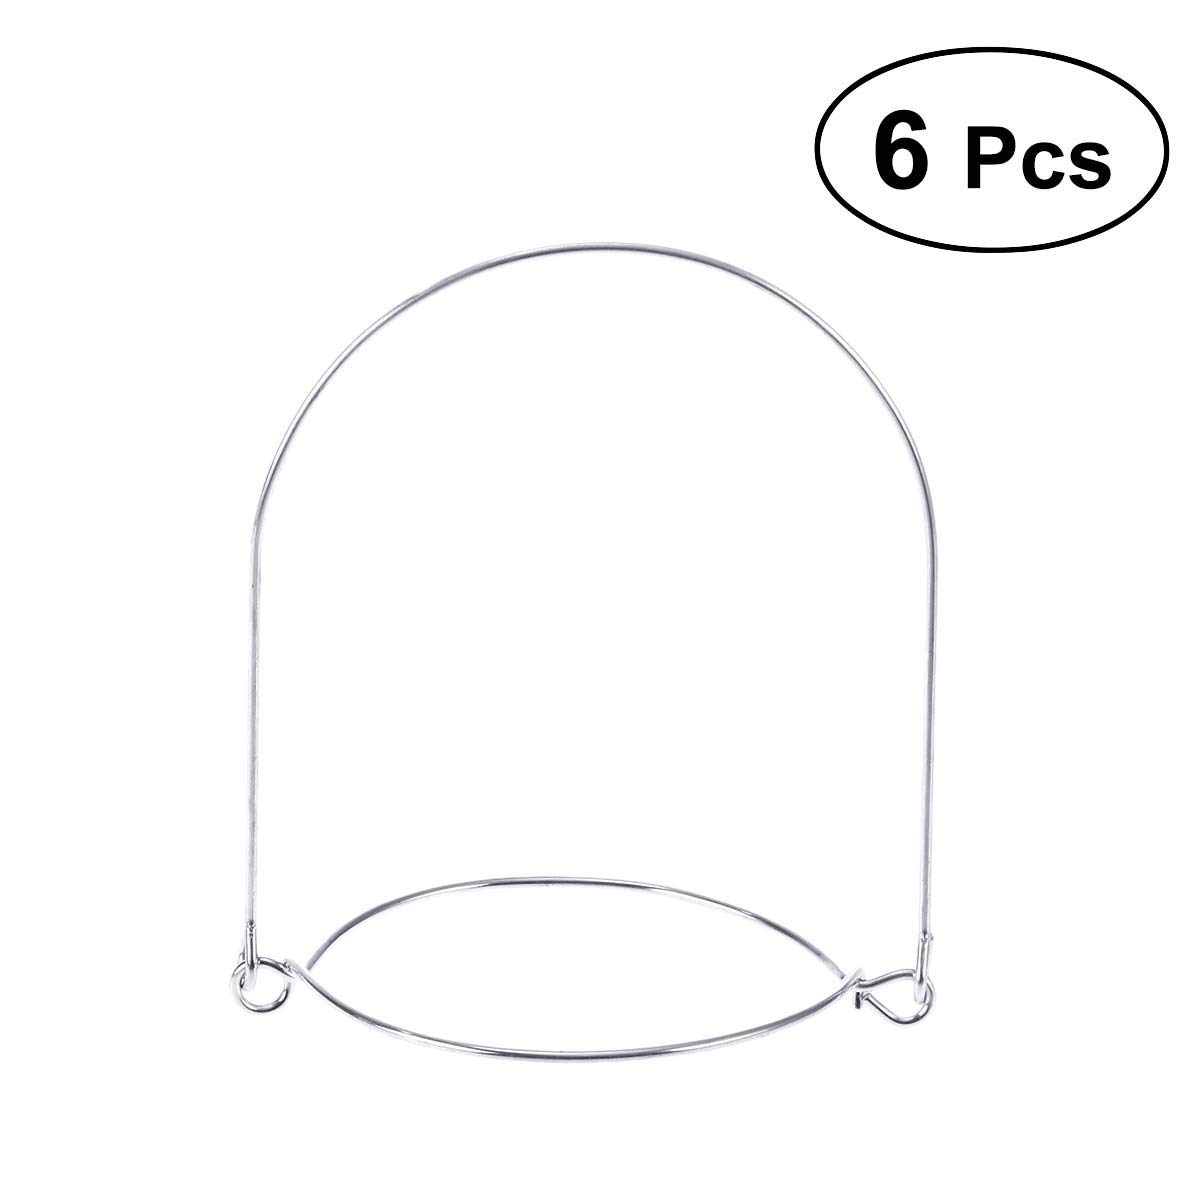 BESTONZON 6pcs Mason Jar Wire Handles Stainless Steel Canning Jars Hanger for Regular Mouth